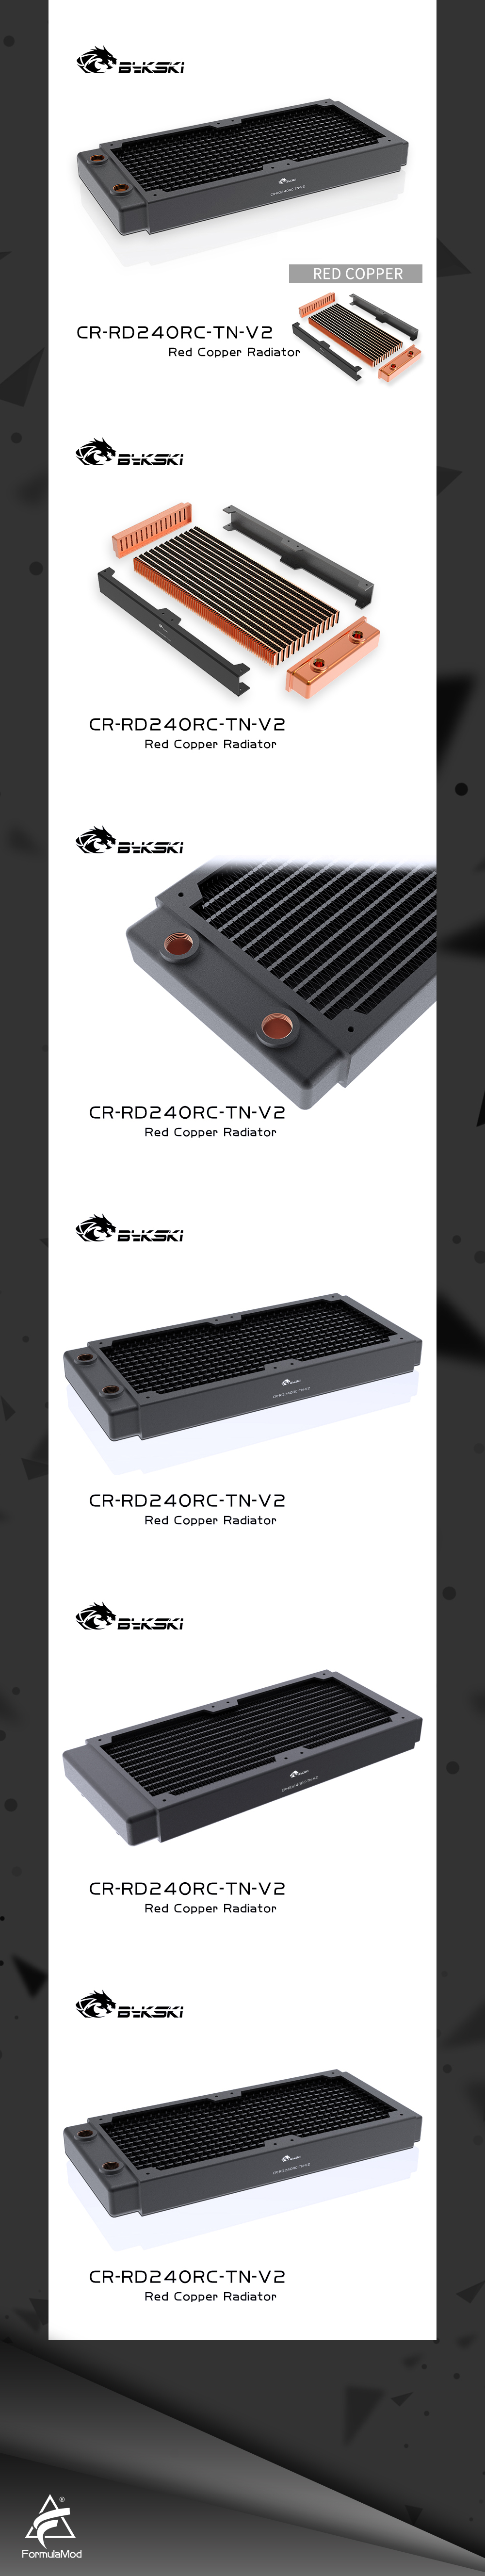 Bykski 240mm Copper Radiator RC Series High-performance Heat Dissipation 30mm Thickness for 12cm Fan Cooler, CR-RD240RC-TN-V2